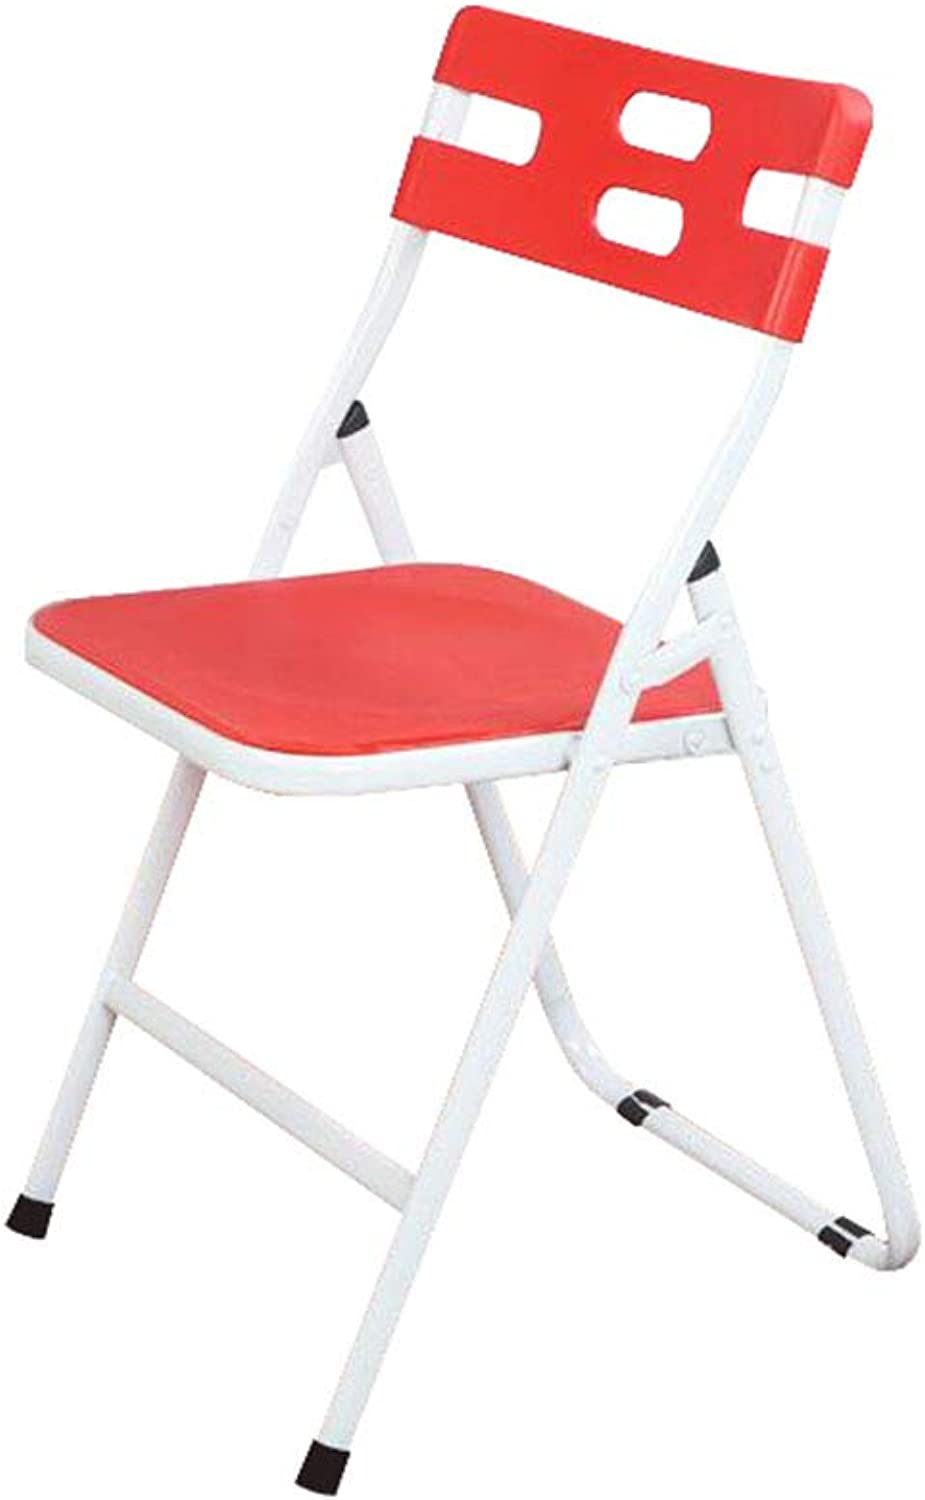 Folding Chair Office Desk Chair Staff Red Plastic Padded Student Training Modern